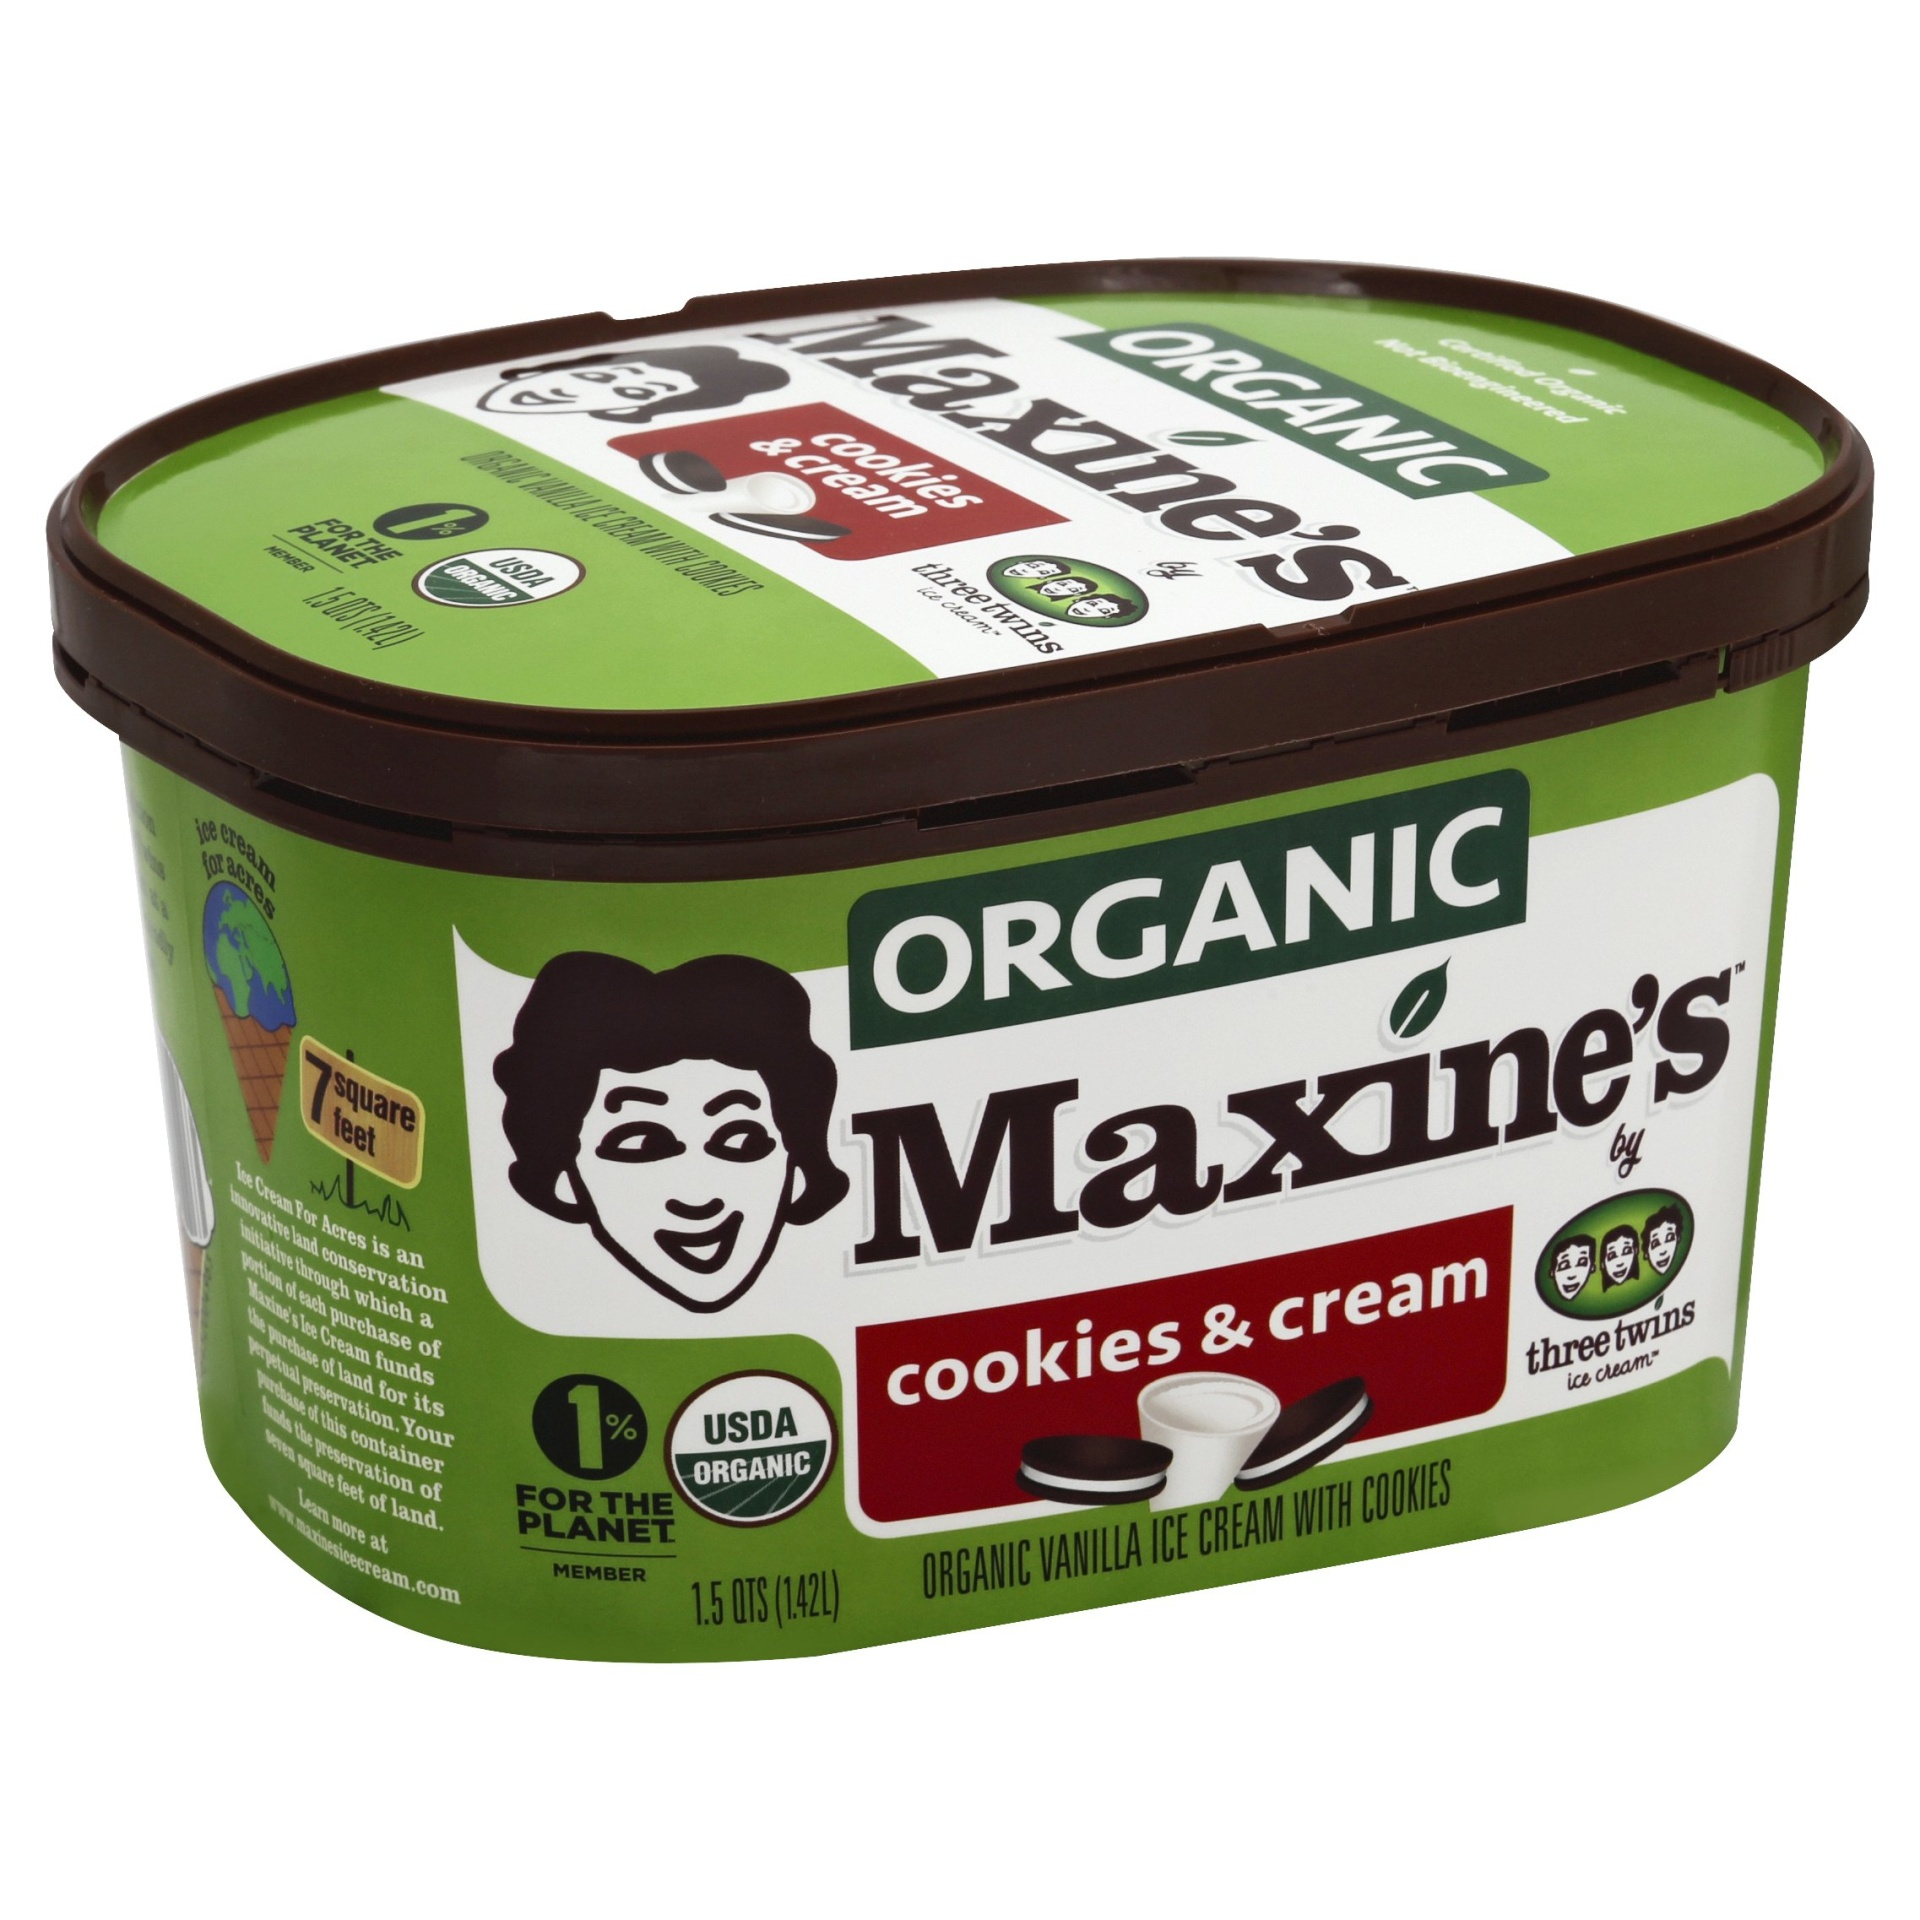 slide 1 of 1, Three Twins Ice Cream Maxine's Organic Cookies & Cream,